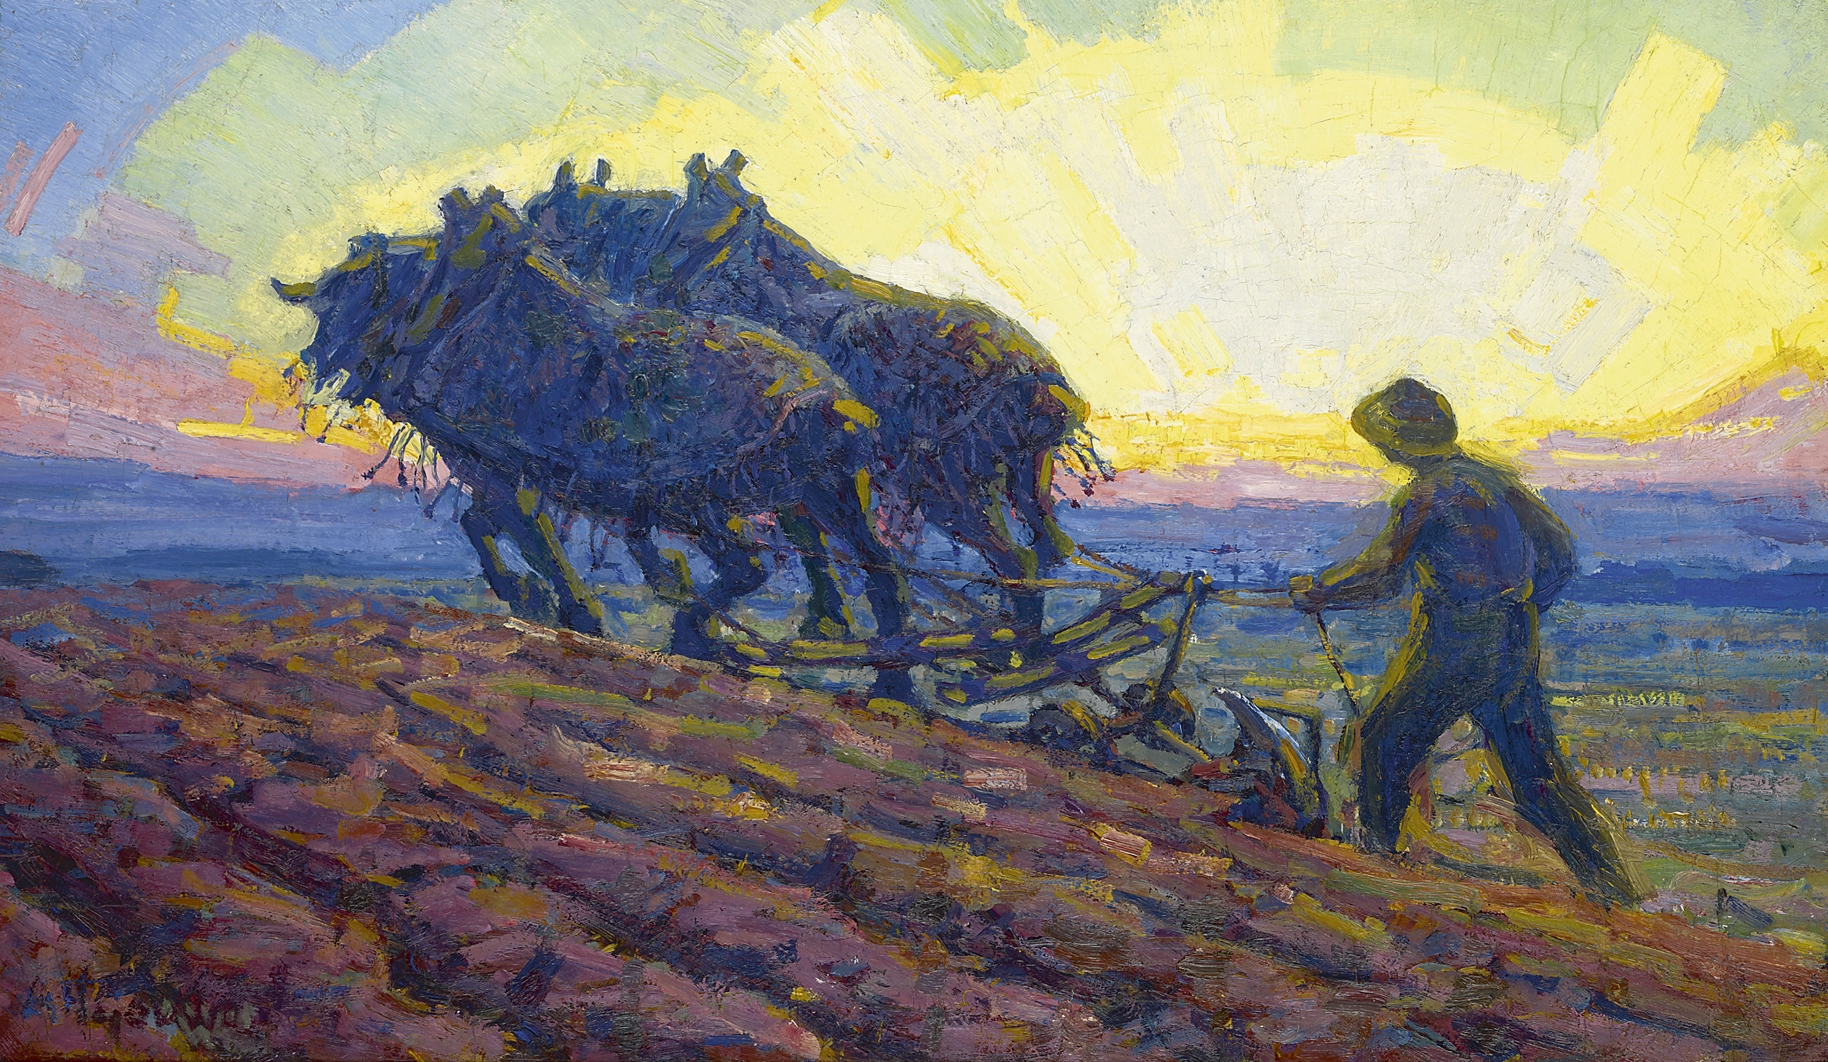 Gouwe A.H. - Ploughing horses at dawn, oil on canvas 48.8 x 82 cm, signed l.l. and executed ca. 1916-1918